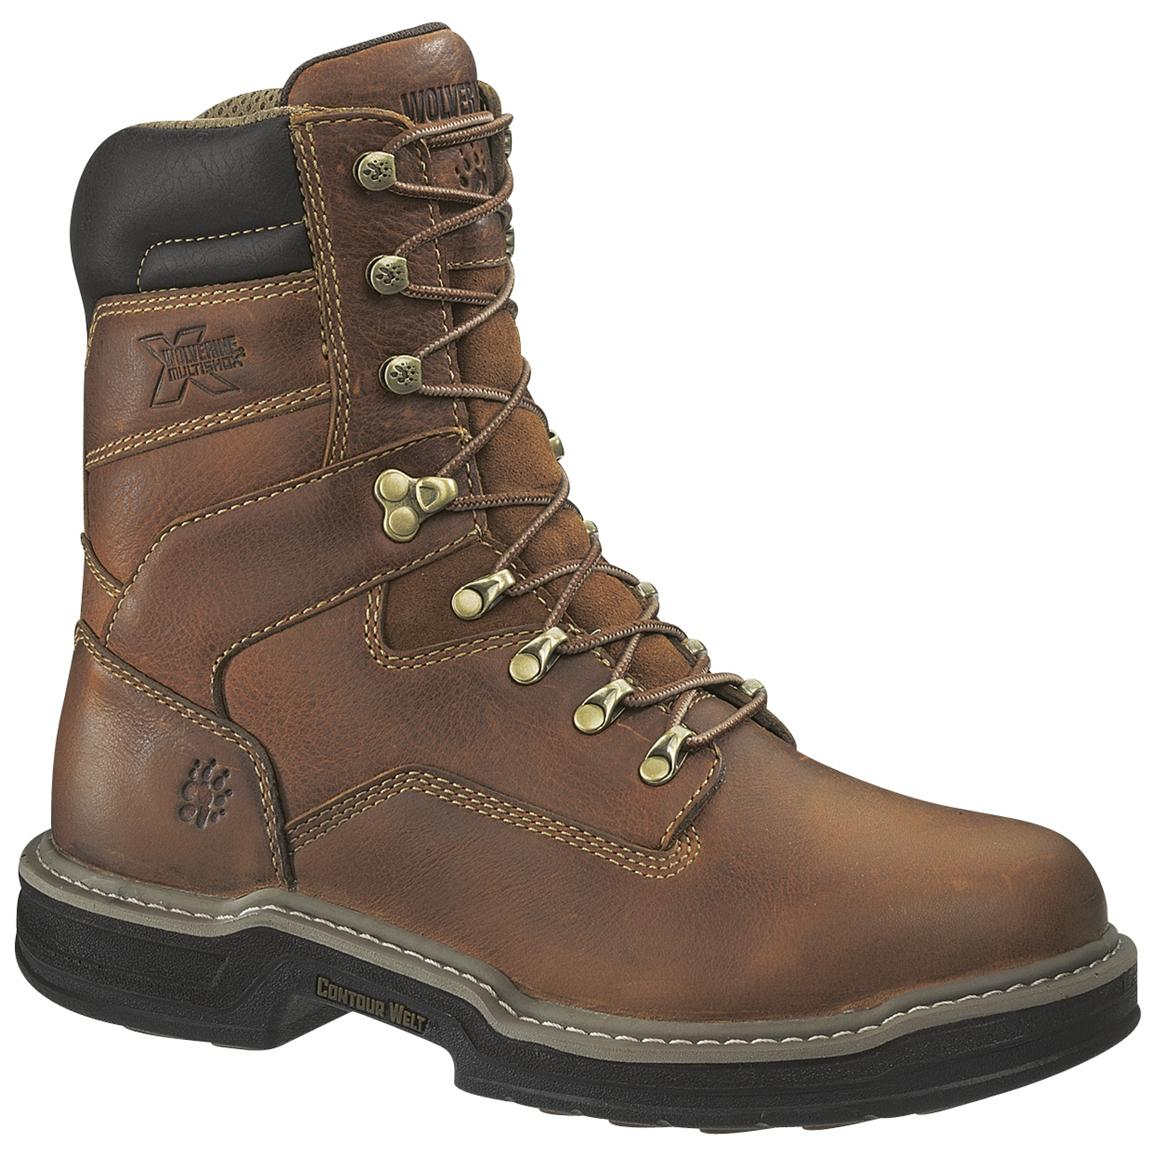 "Wolverine Men's Raider 8"" MultiShox Boots, Brown"